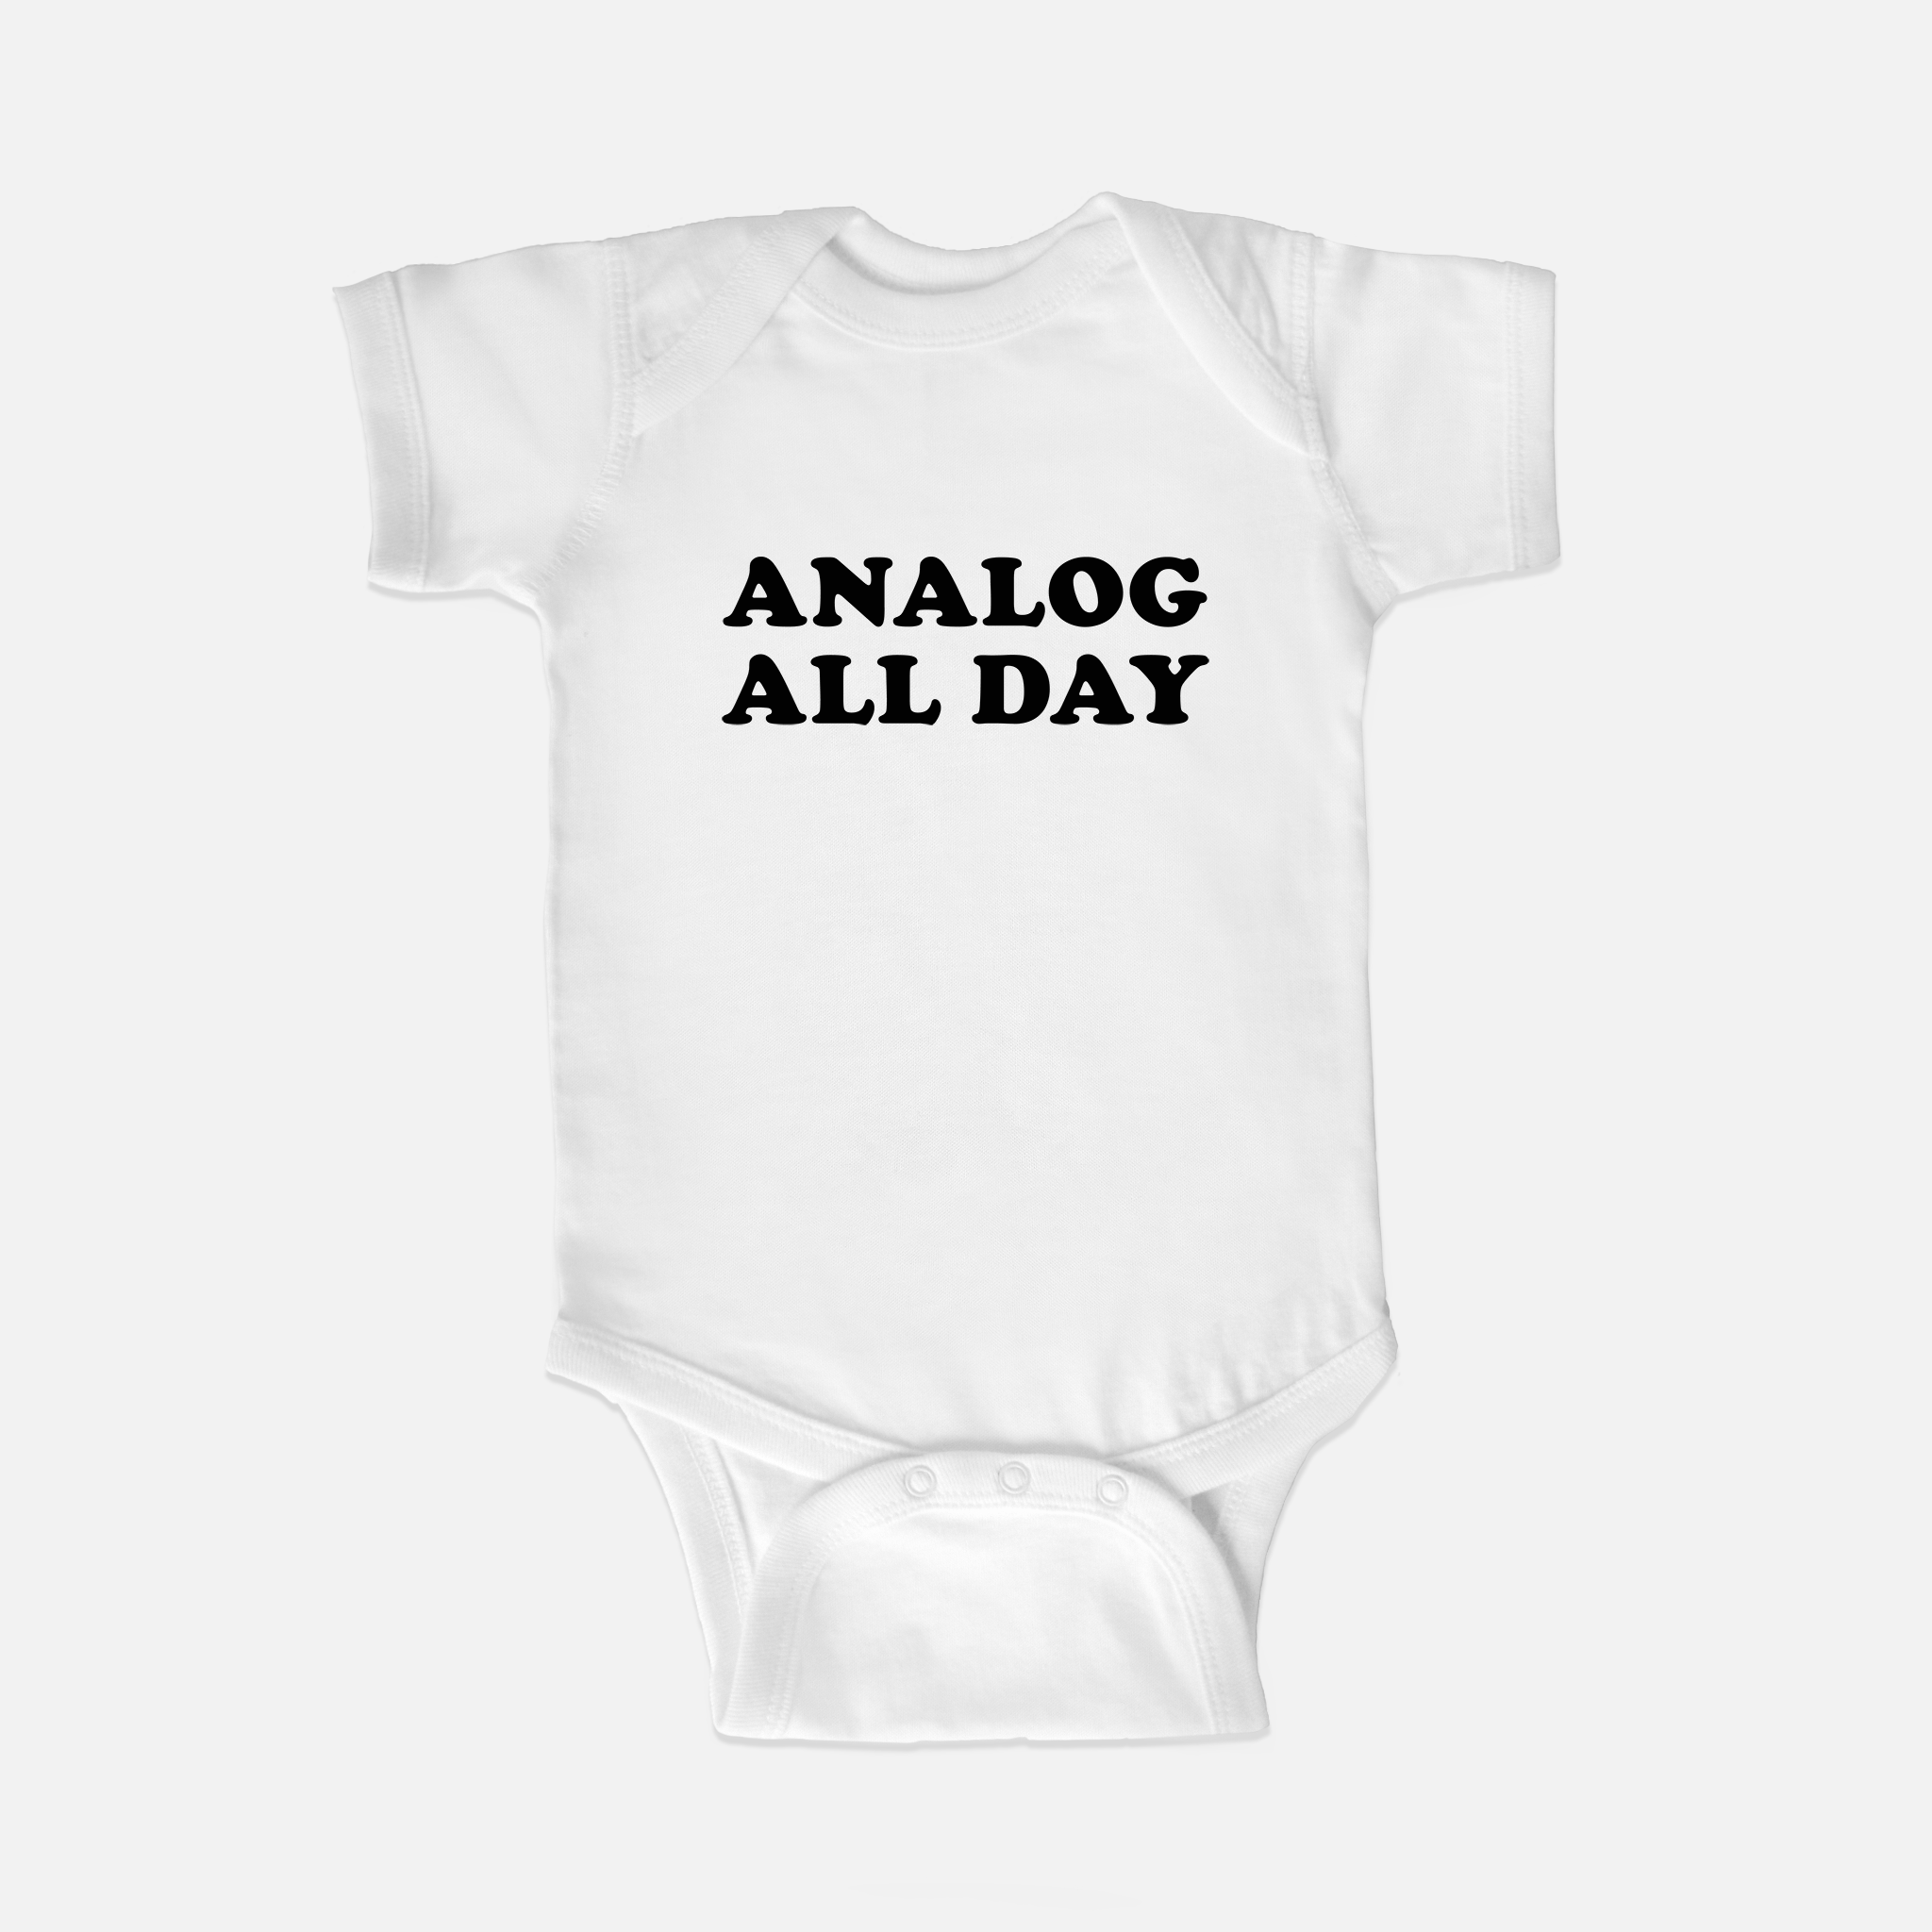 Analog All Day Baby One Piece Bodysuit